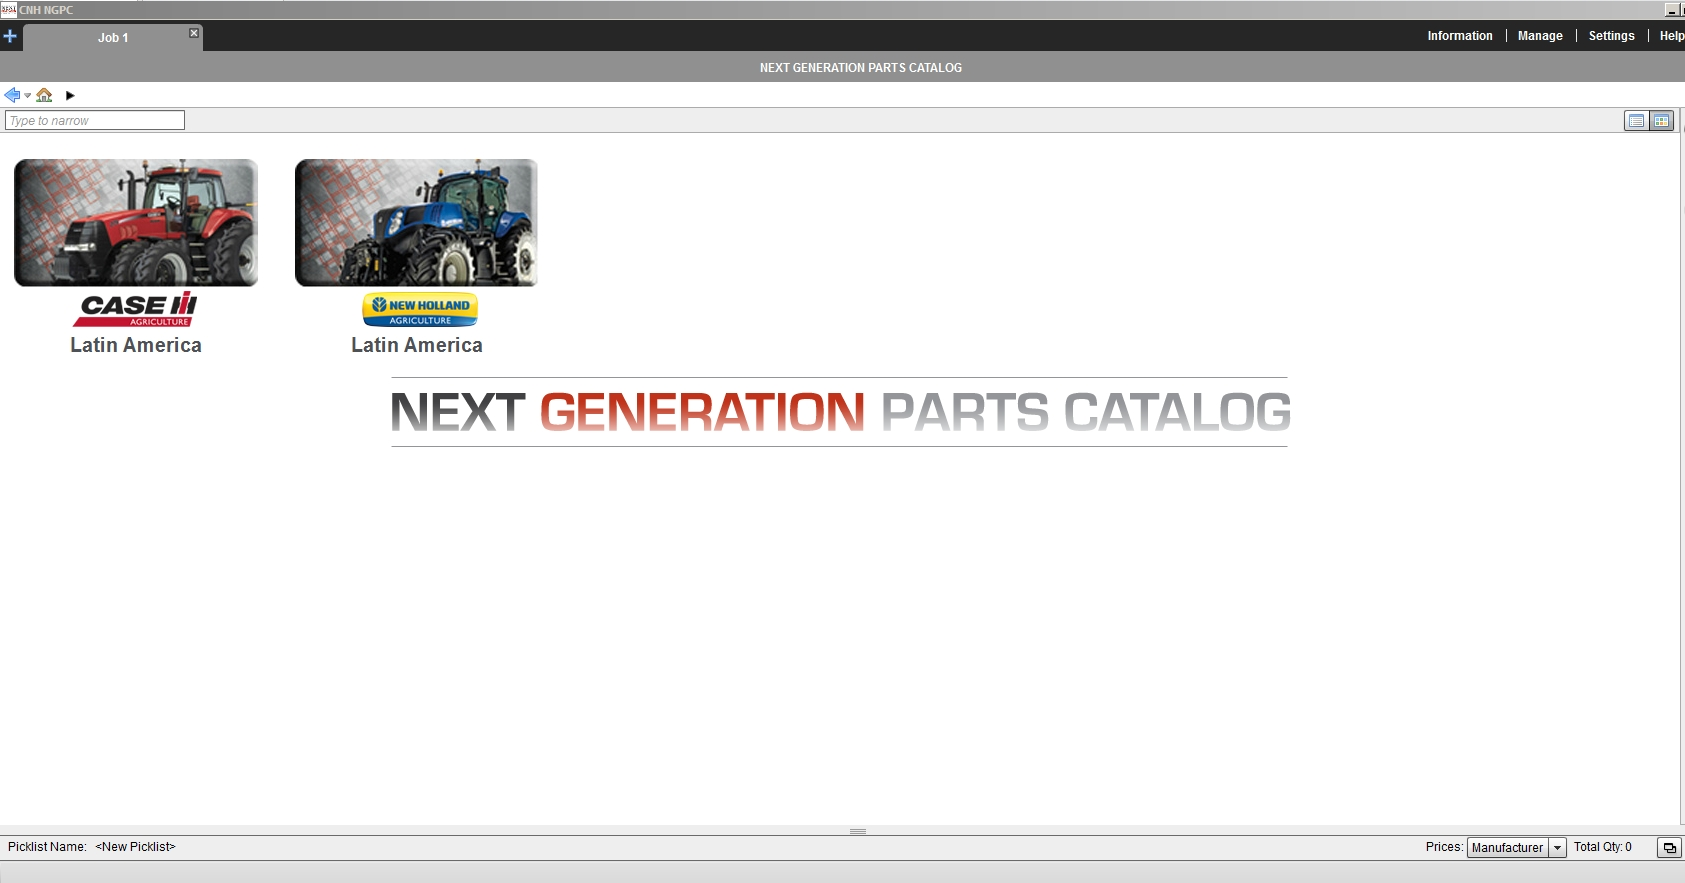 CNH New Holland Case IH AG Latin America EPC Combo Spare Parts Catalog DVD [02.2021]